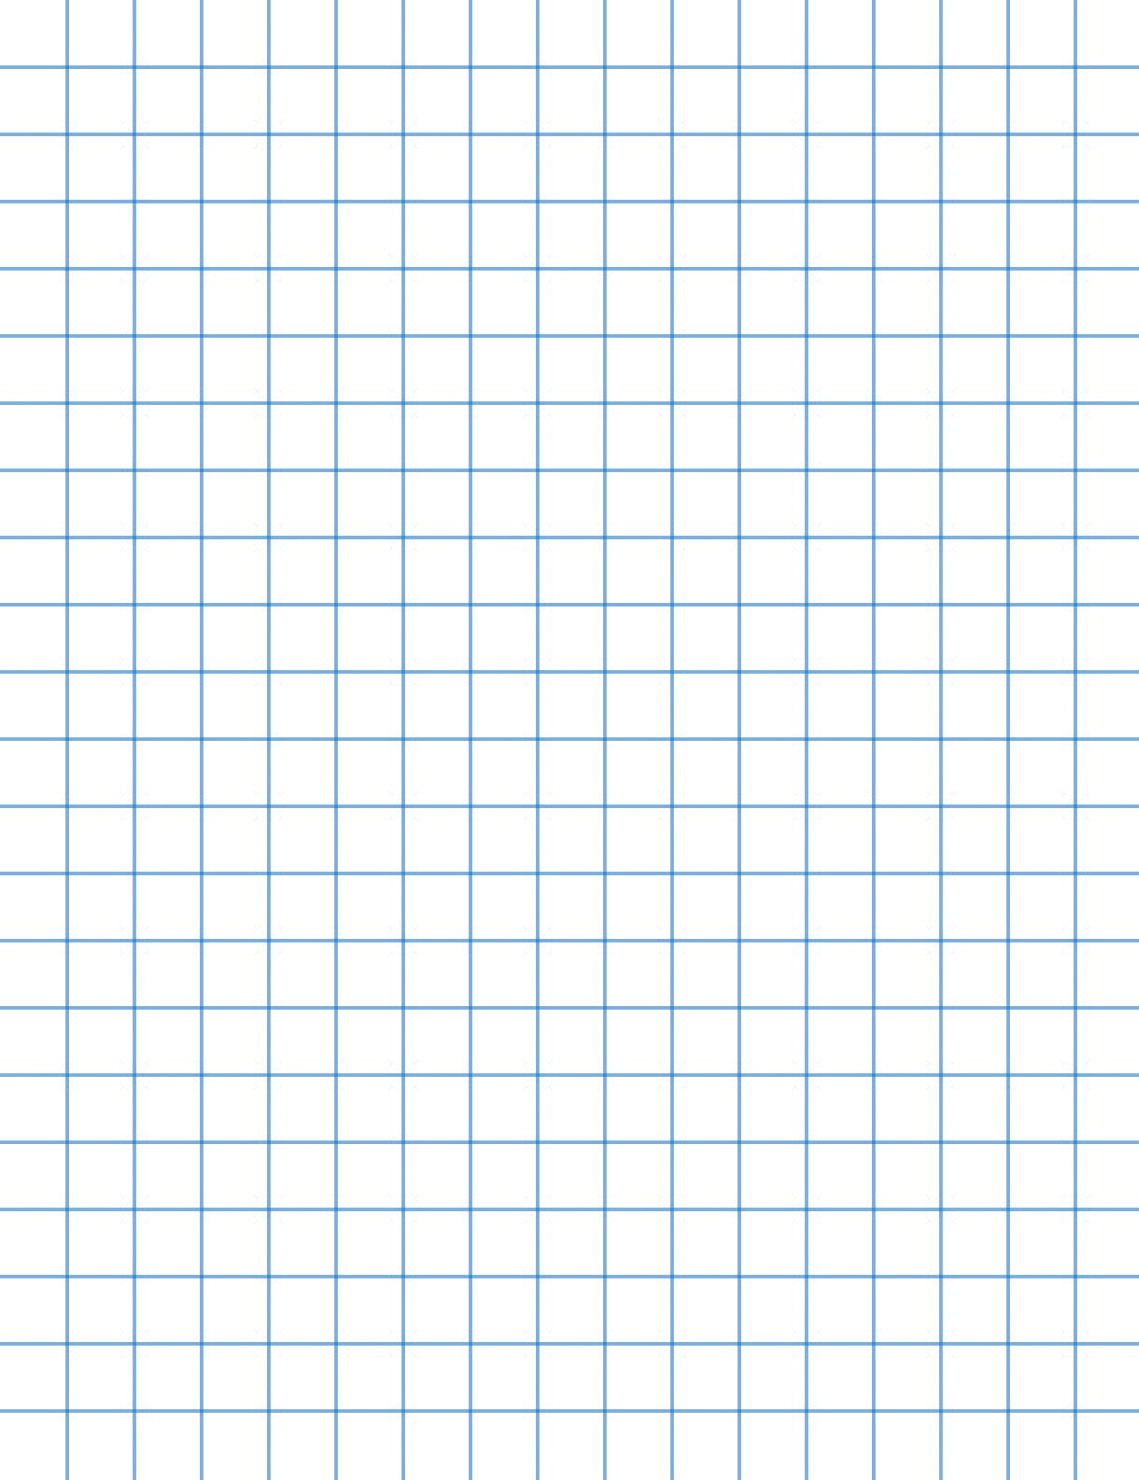 worksheet Graph Paper Images school smart graph paper white soar life products 8 12 x 11 in 15 lb